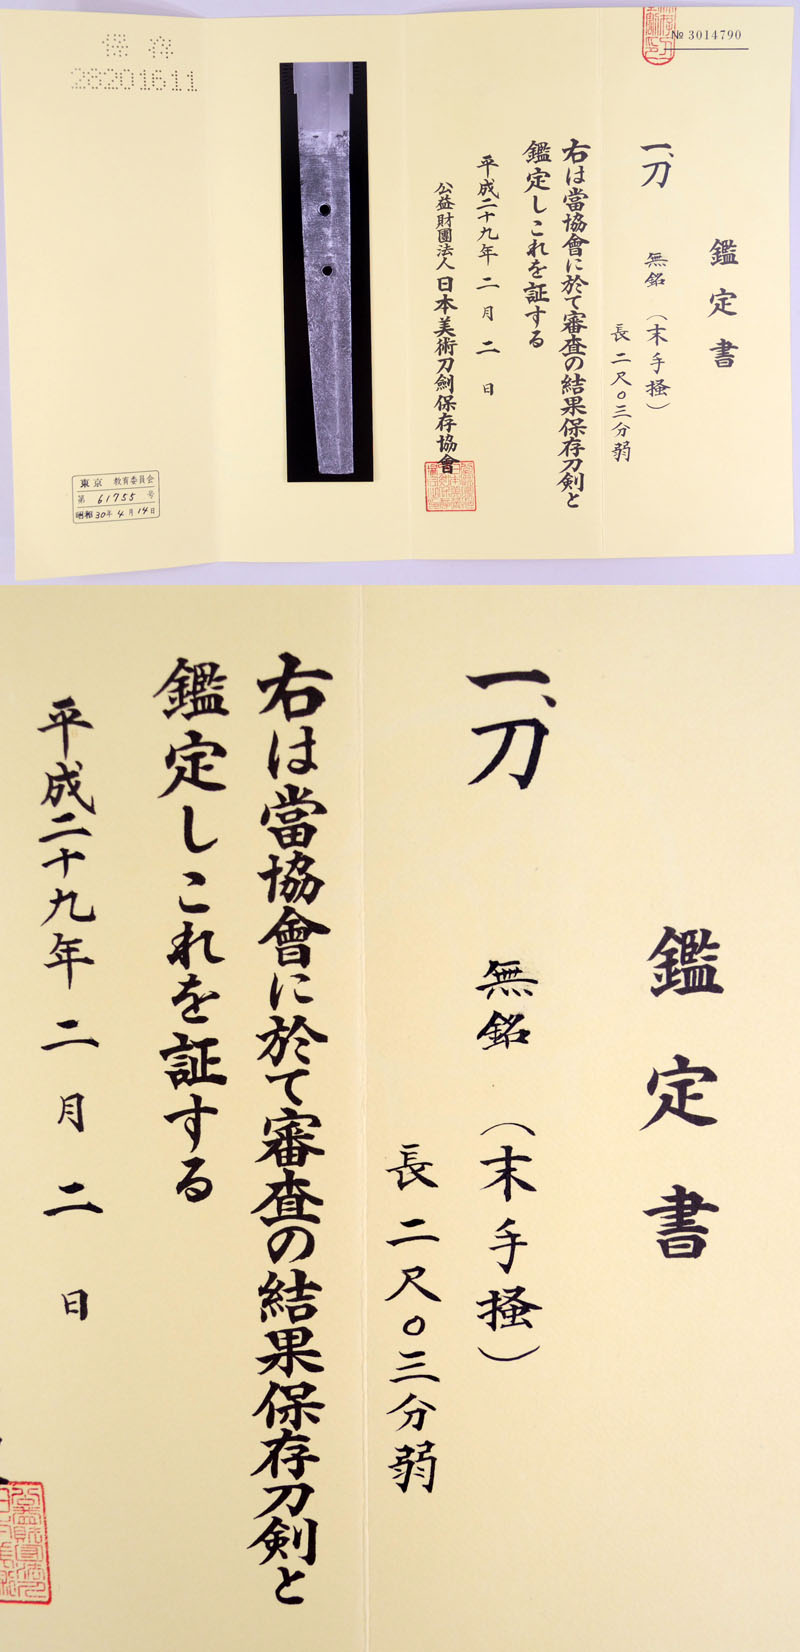 無銘(末手掻) Picture of Certificate